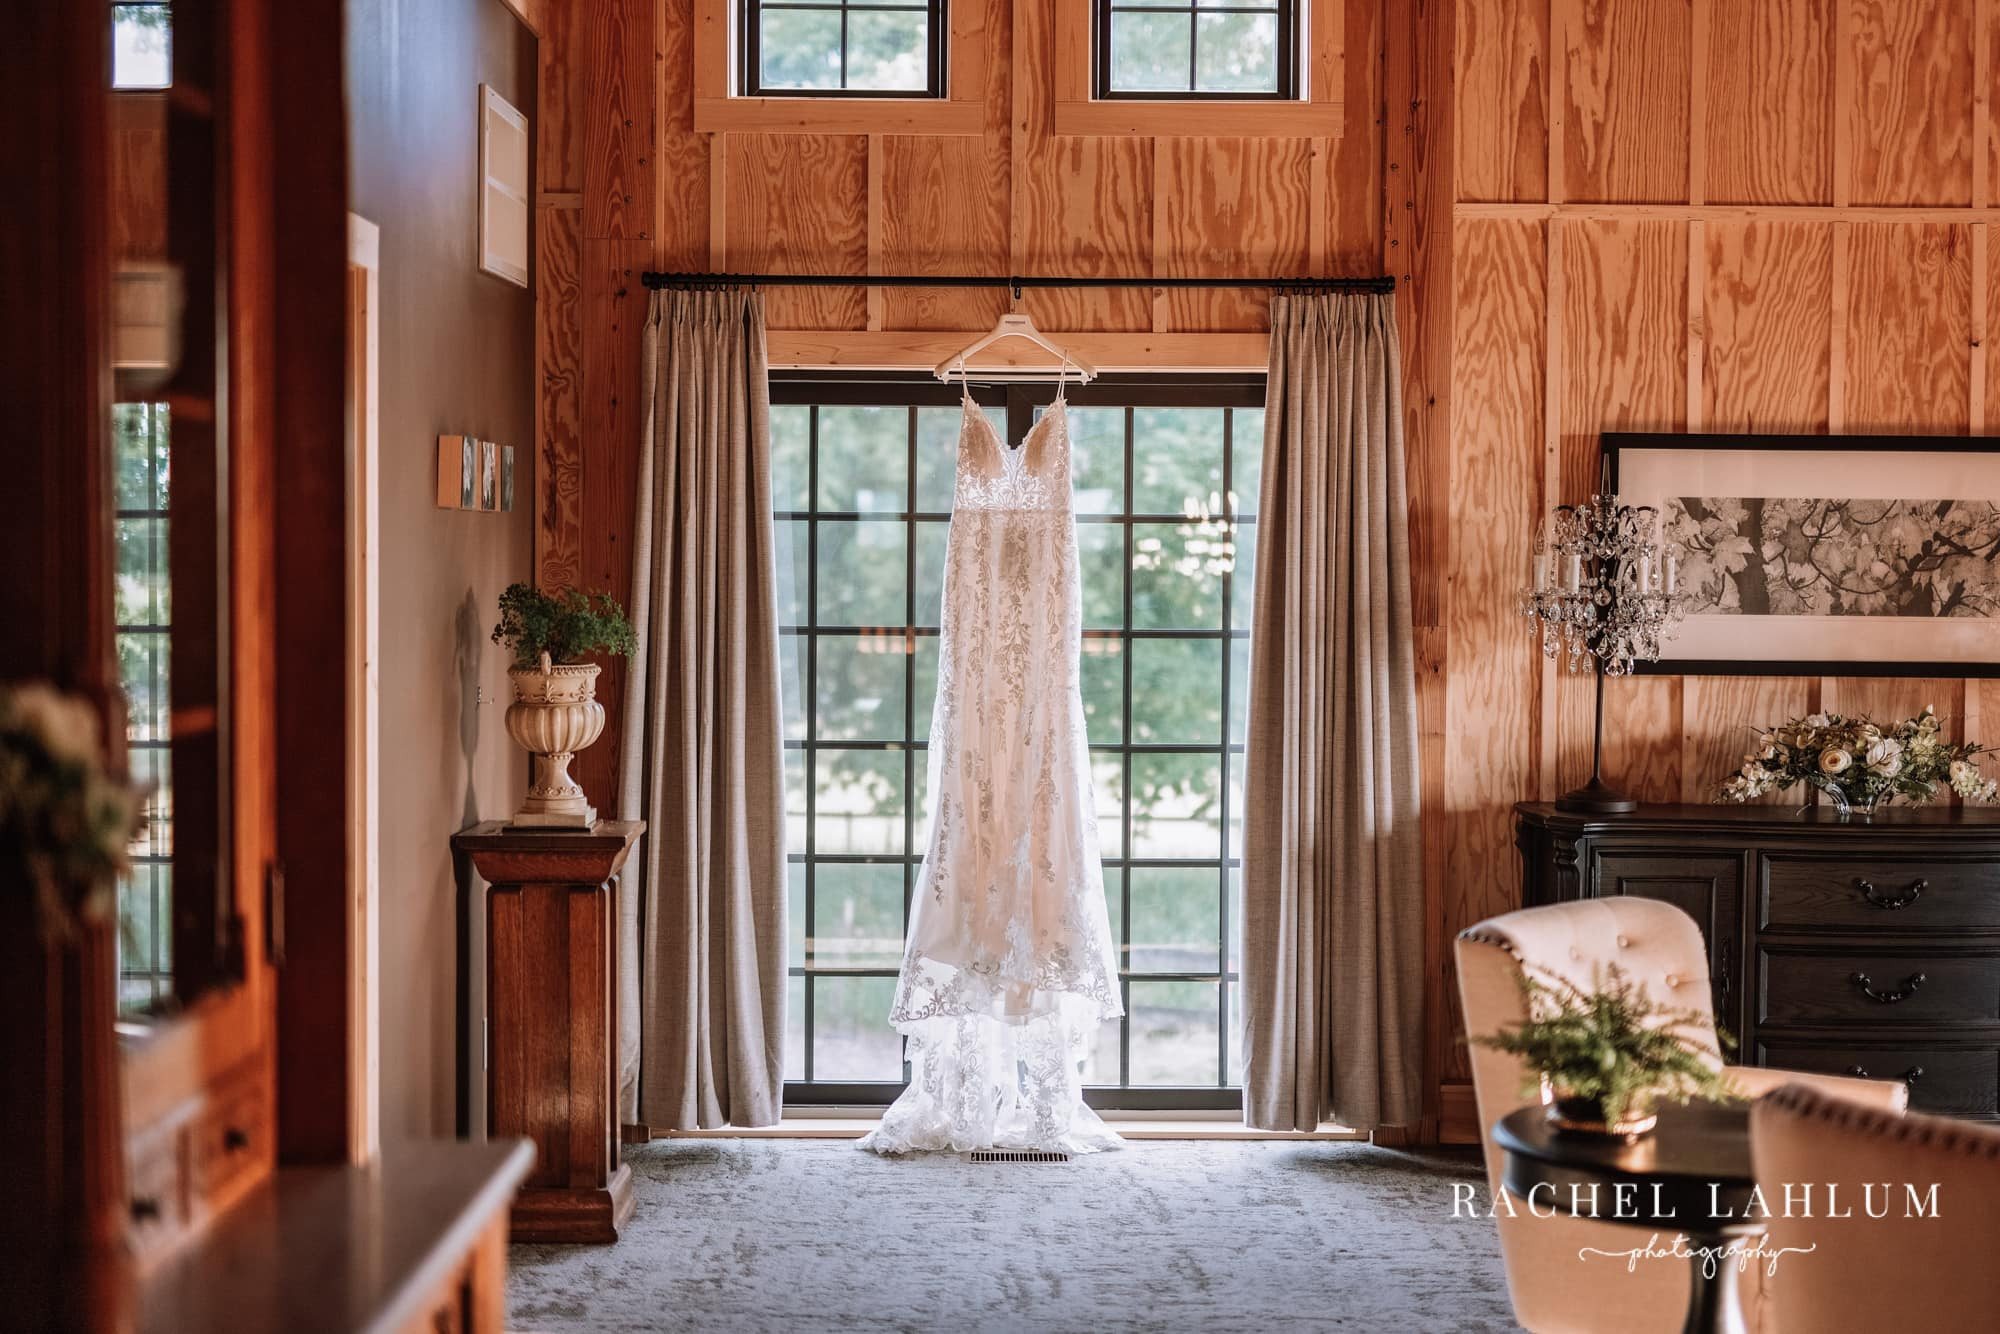 Dress hangs from curtains inside bridal suite at Circle B Ranch in Isanti, Minnesota.